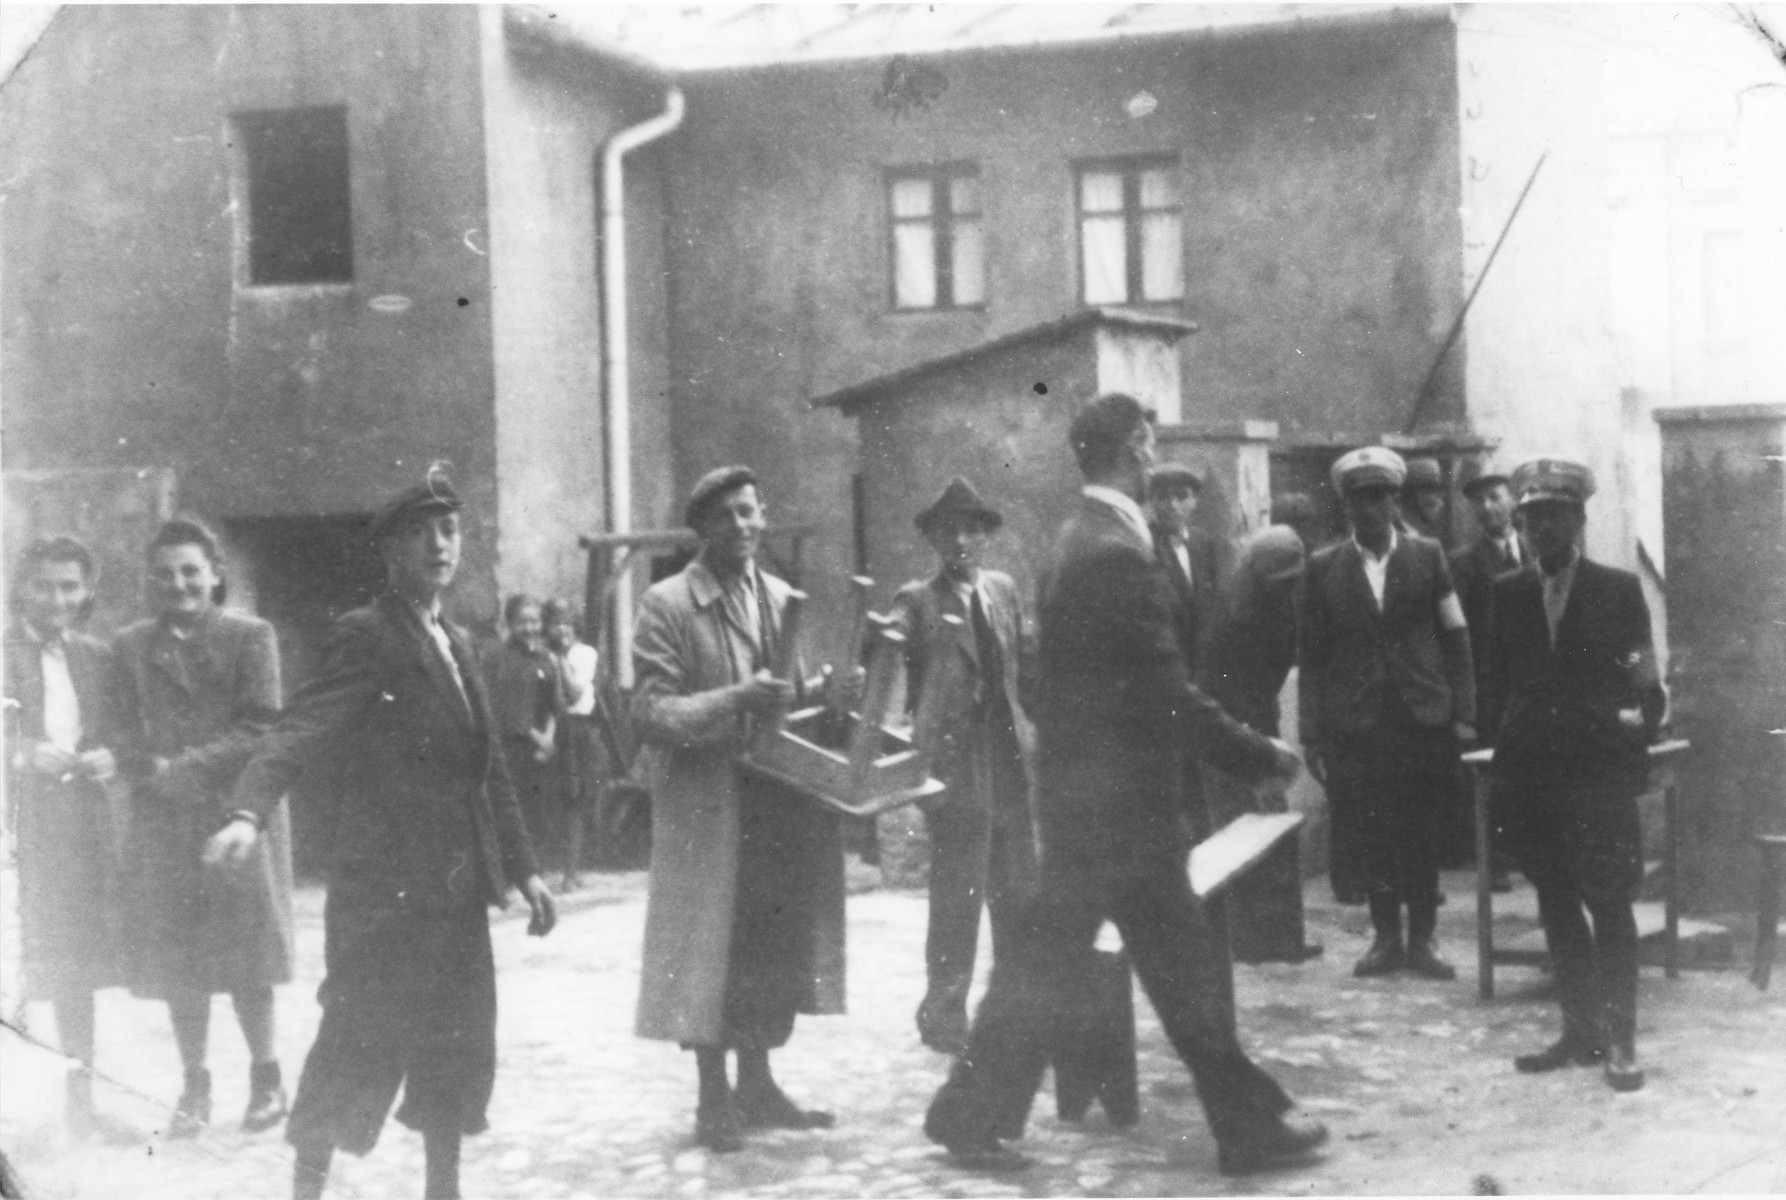 Street scene with Jewish police in the Bedzin ghetto.  Among those pictured is Hanka Ehrlich (second from the left).